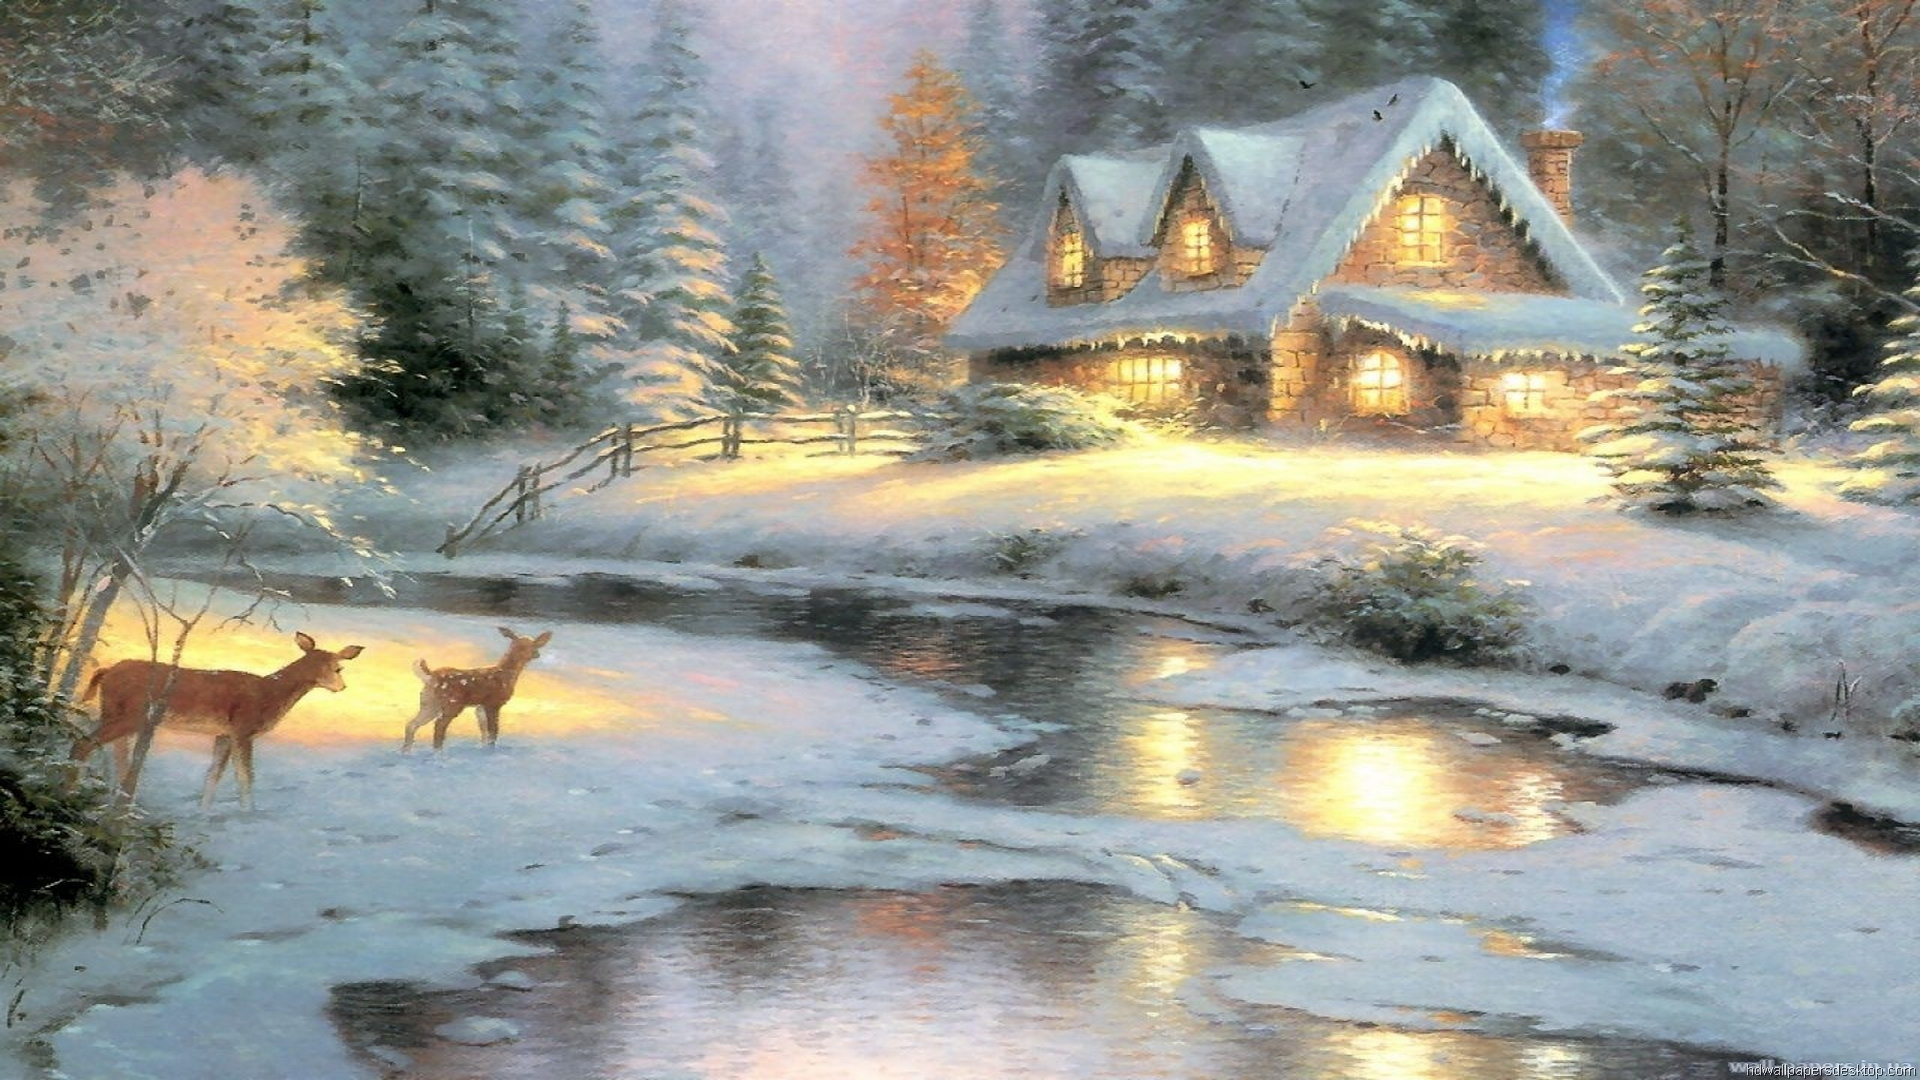 thomas kinkade wallpaper 1920x1080 - photo #6